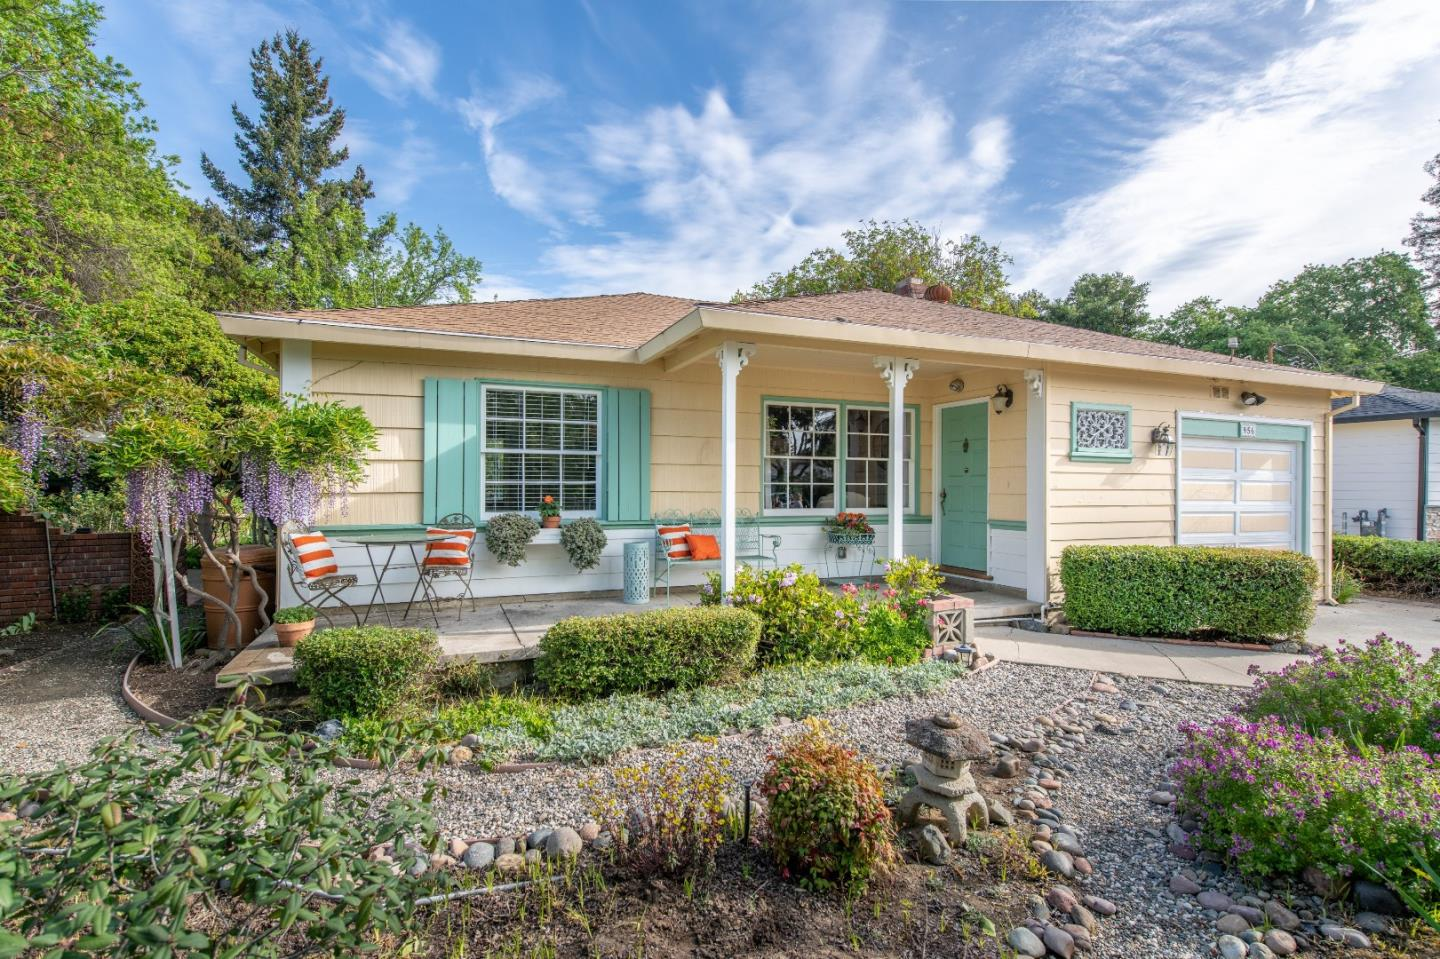 Single Family Home for Sale at 956 Marilyn Drive 956 Marilyn Drive Mountain View, California 94040 United States